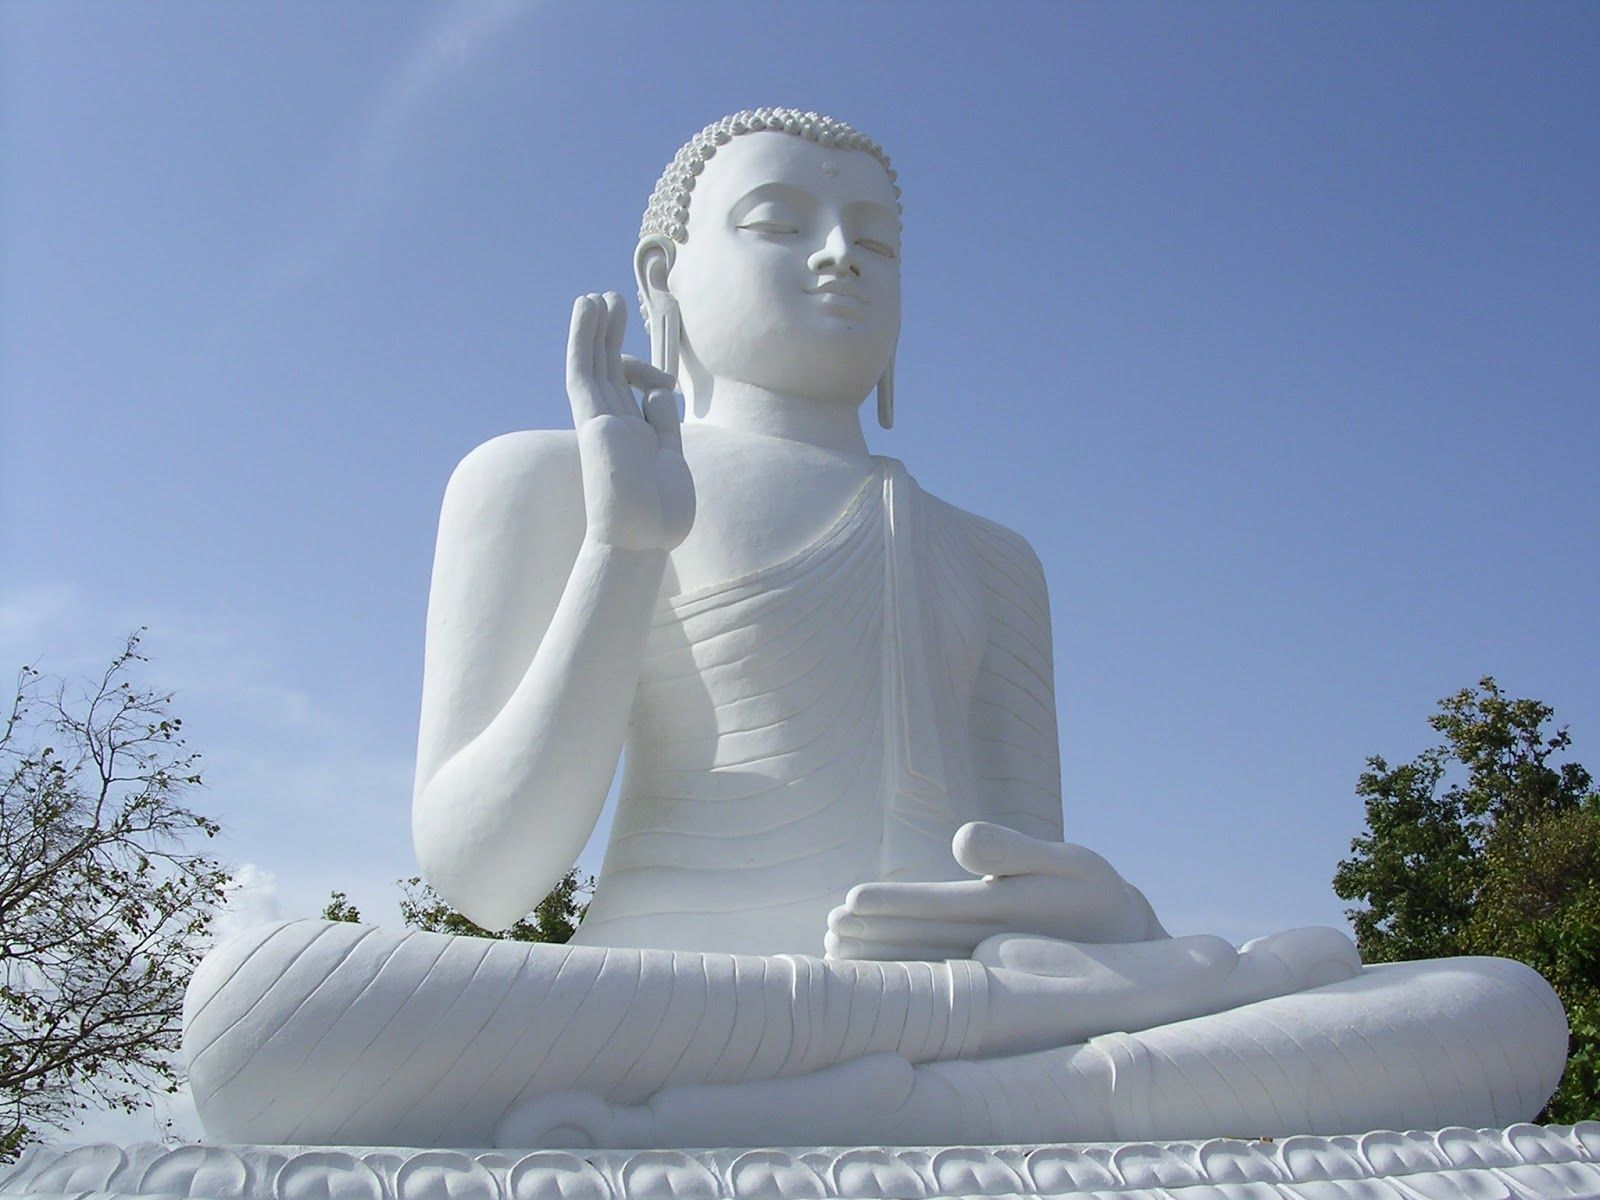 Lord buddha images for mobile 5